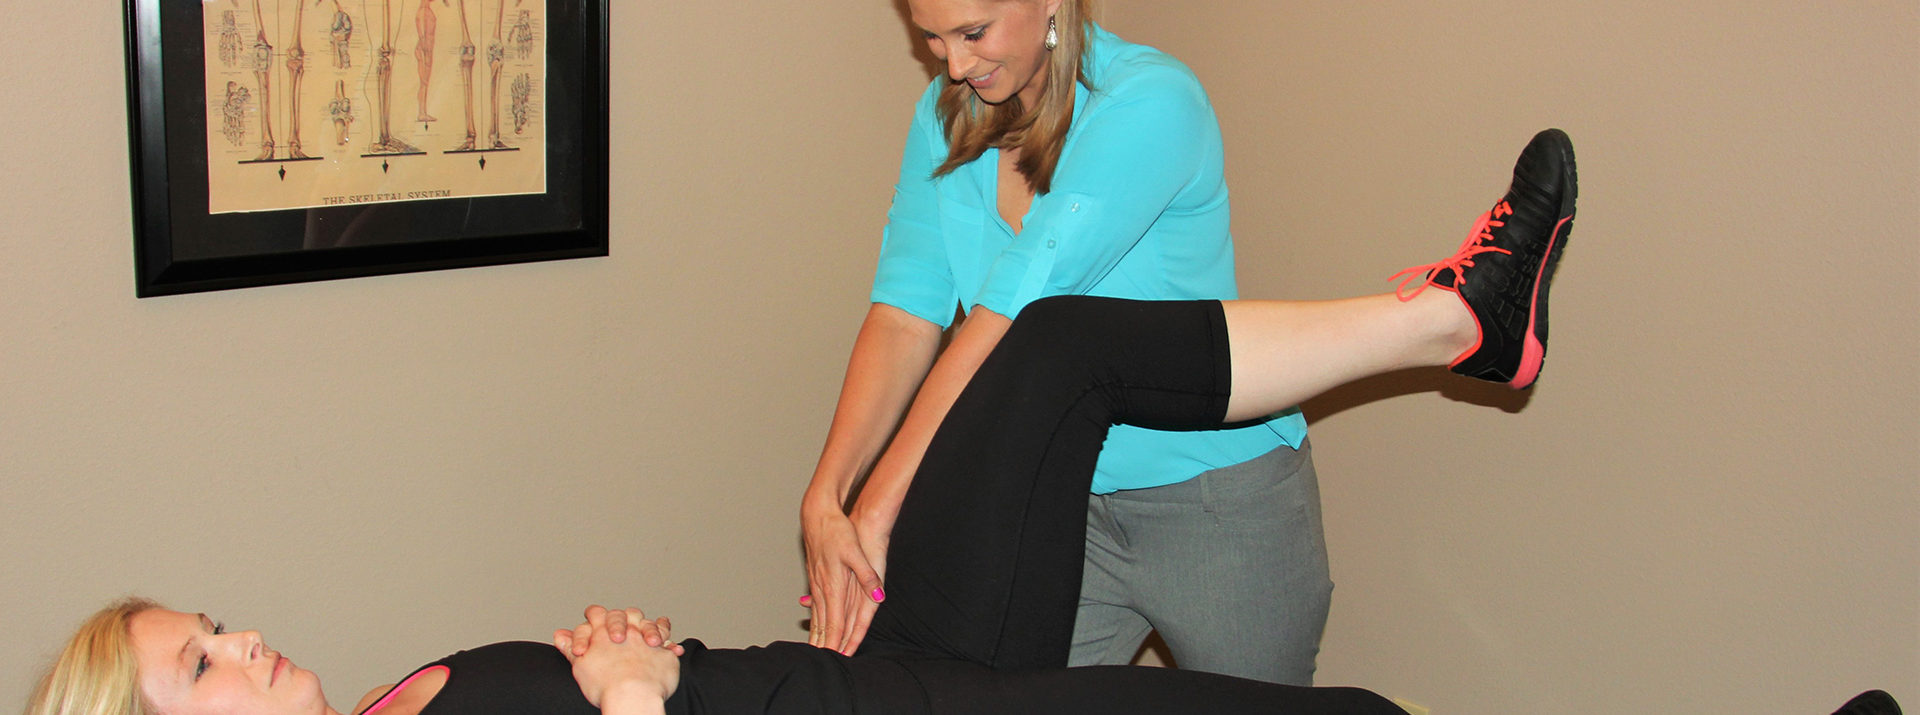 Virtuosity Chiropractic by Dr. Lindsay